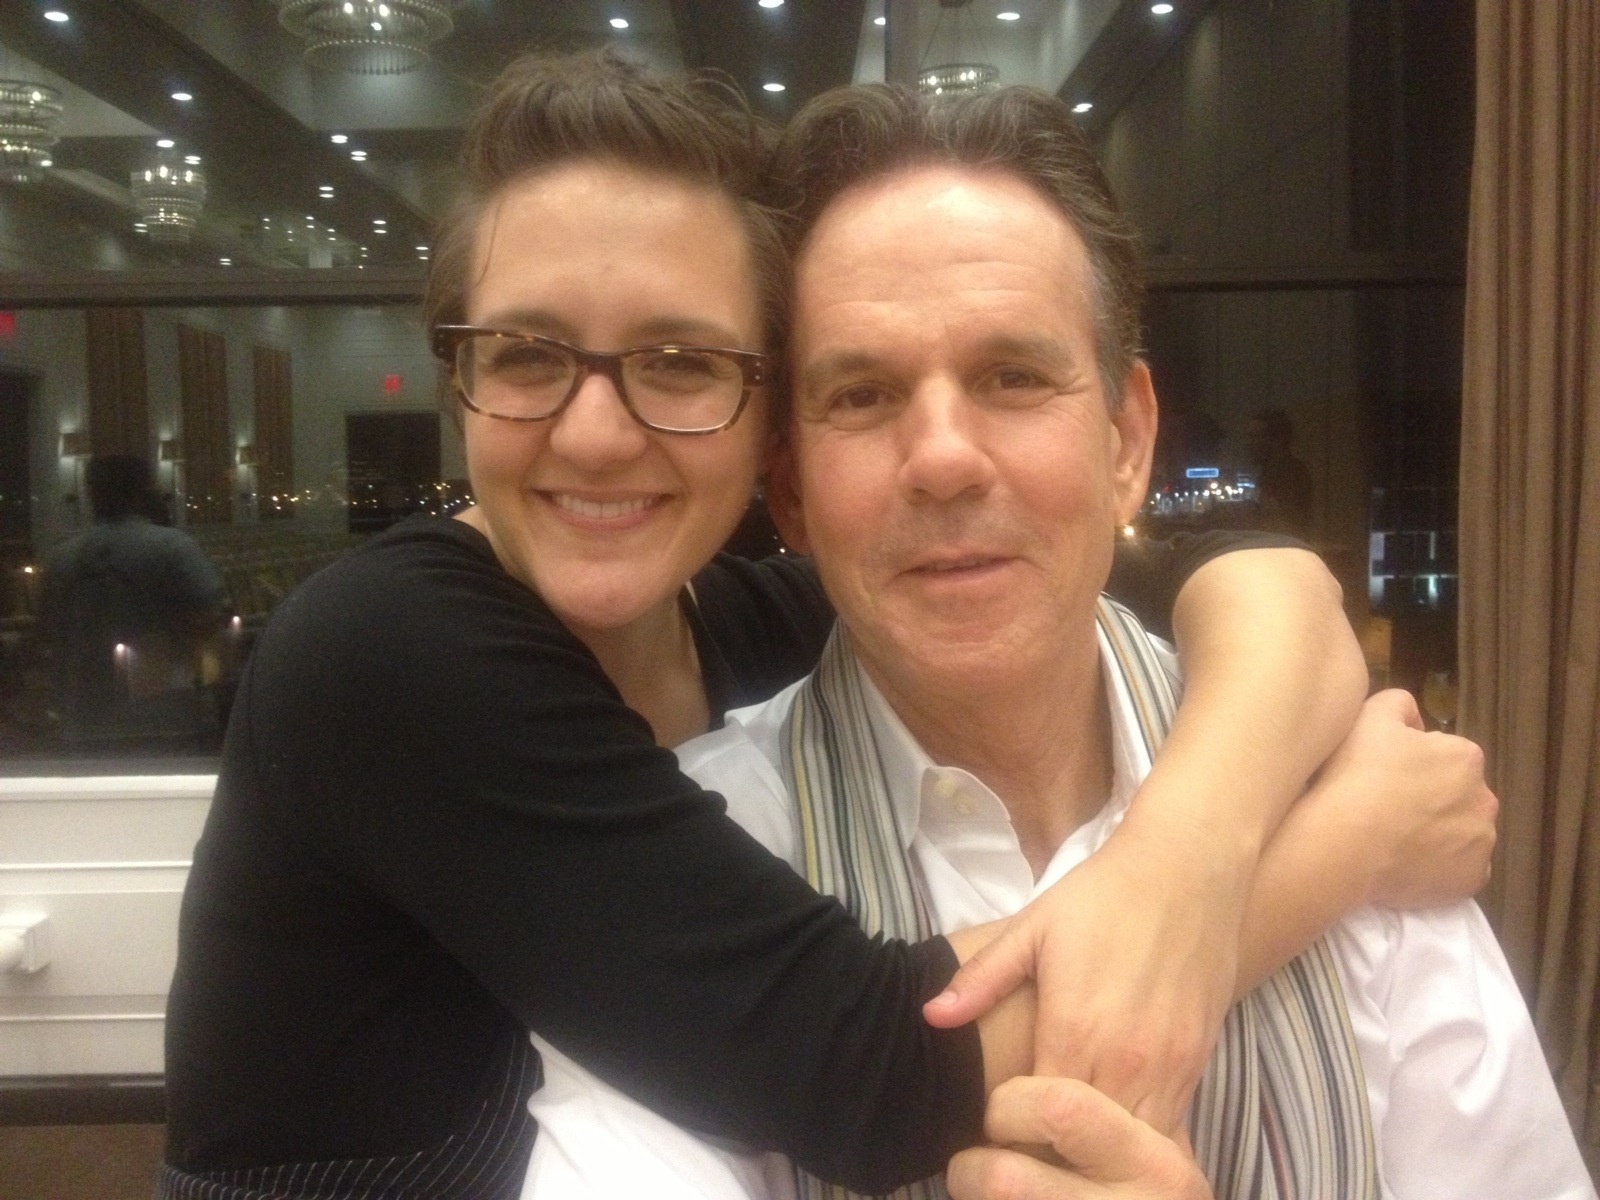 And, just in case you missed it the first time, me and Thomas Keller. Please note how he is holding my hand. Like we're bff's.